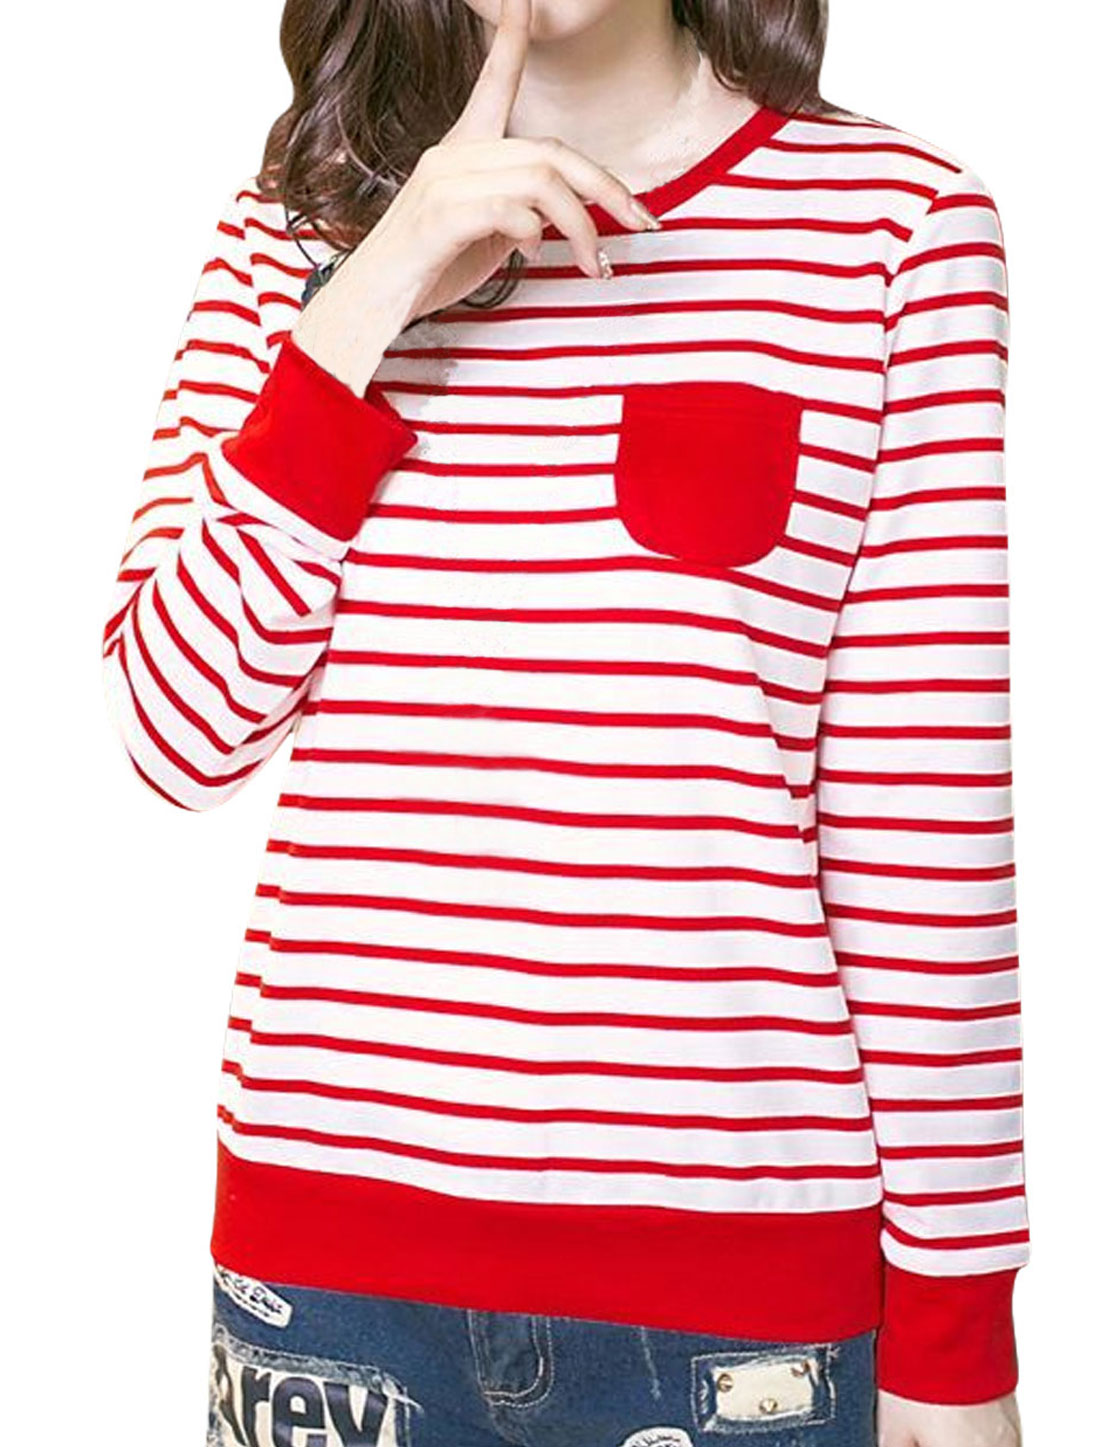 Lady Long Sleeve Bust Pocket Round Neck Stripes Shirt Red White M